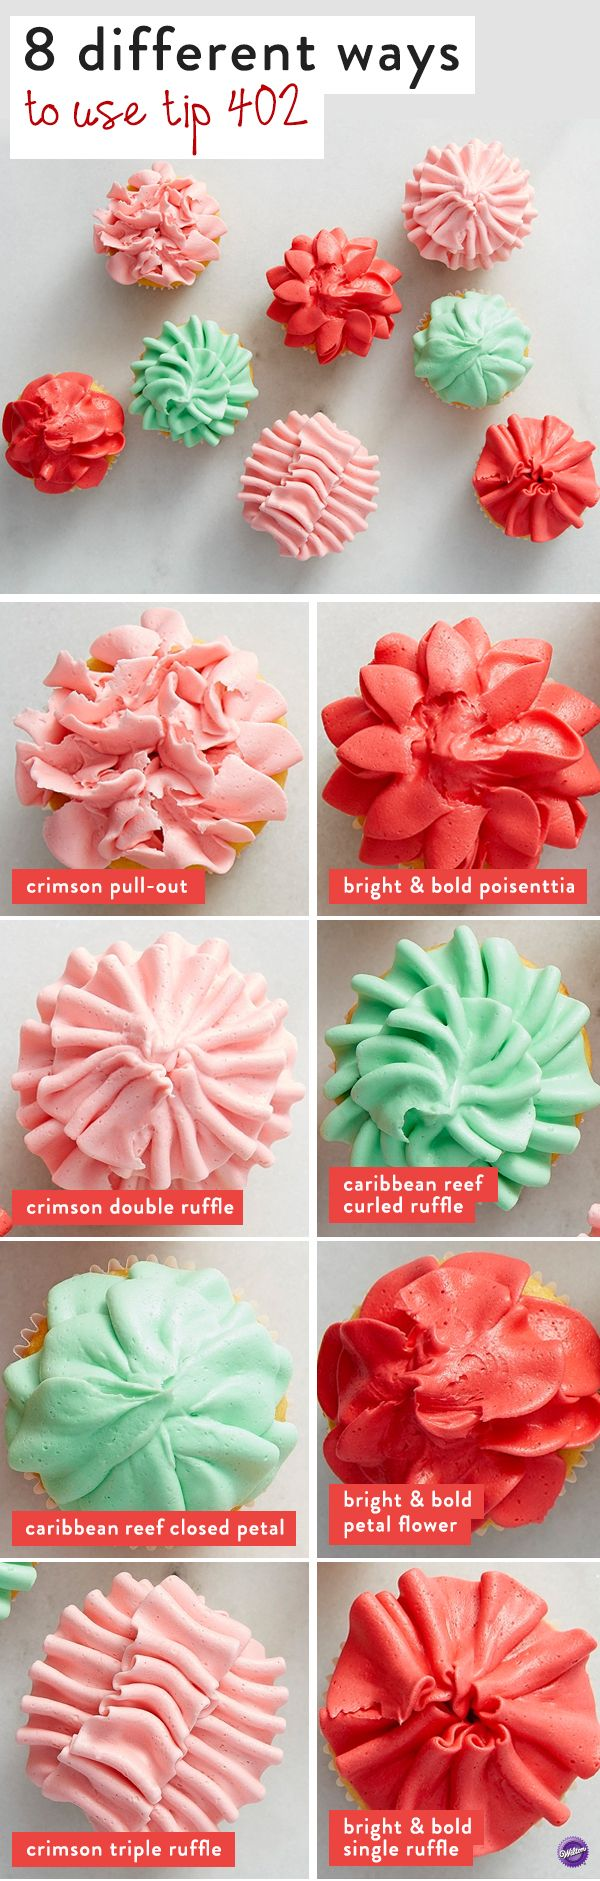 22 best cupcake decorations images on Pinterest